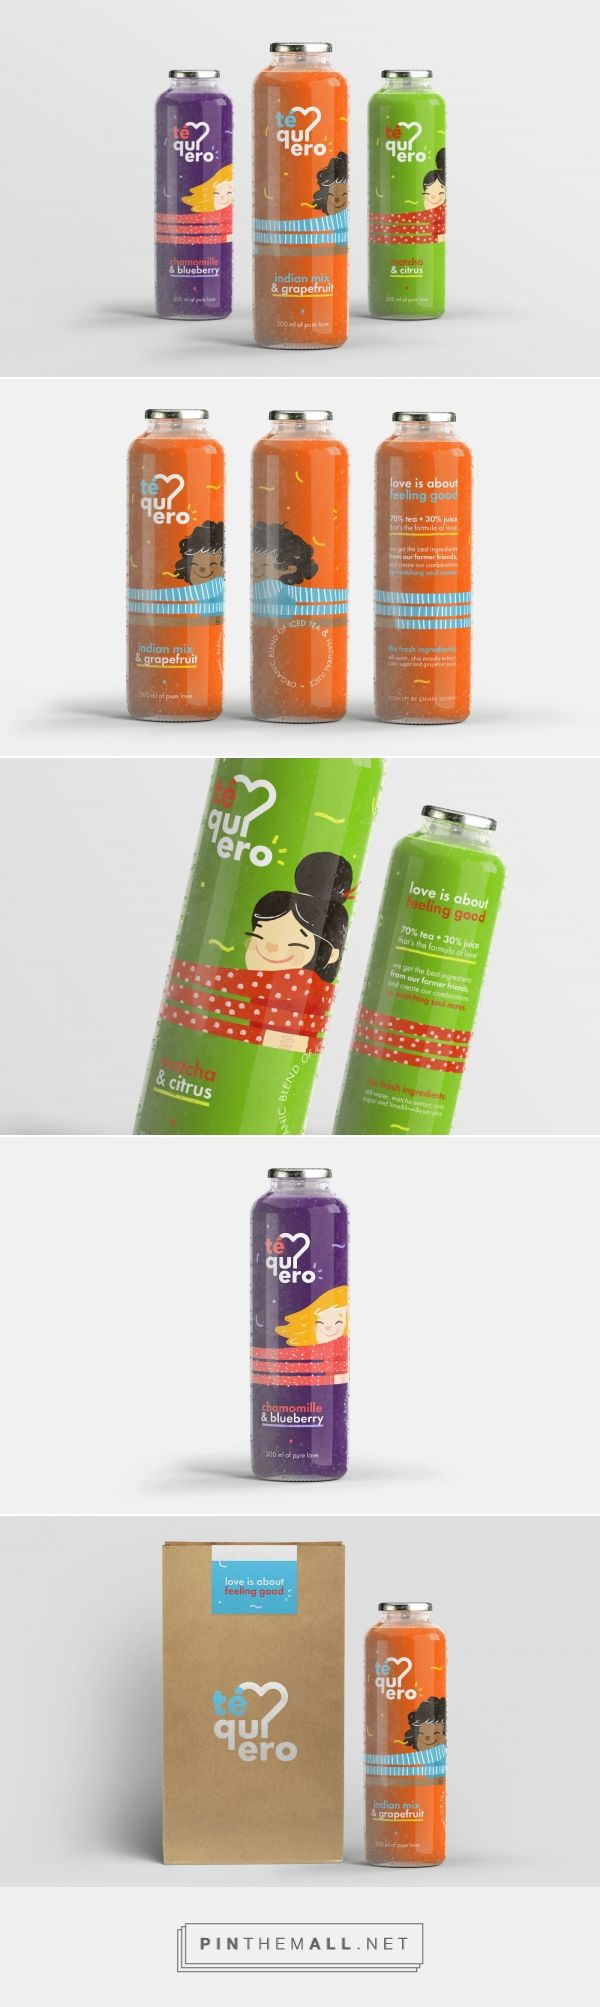 Té Quiero (Concept) - Packaging of the World - Creative Package Design Gallery - http://www.packagingoftheworld.com/2017/07/te-quiero-concept.html